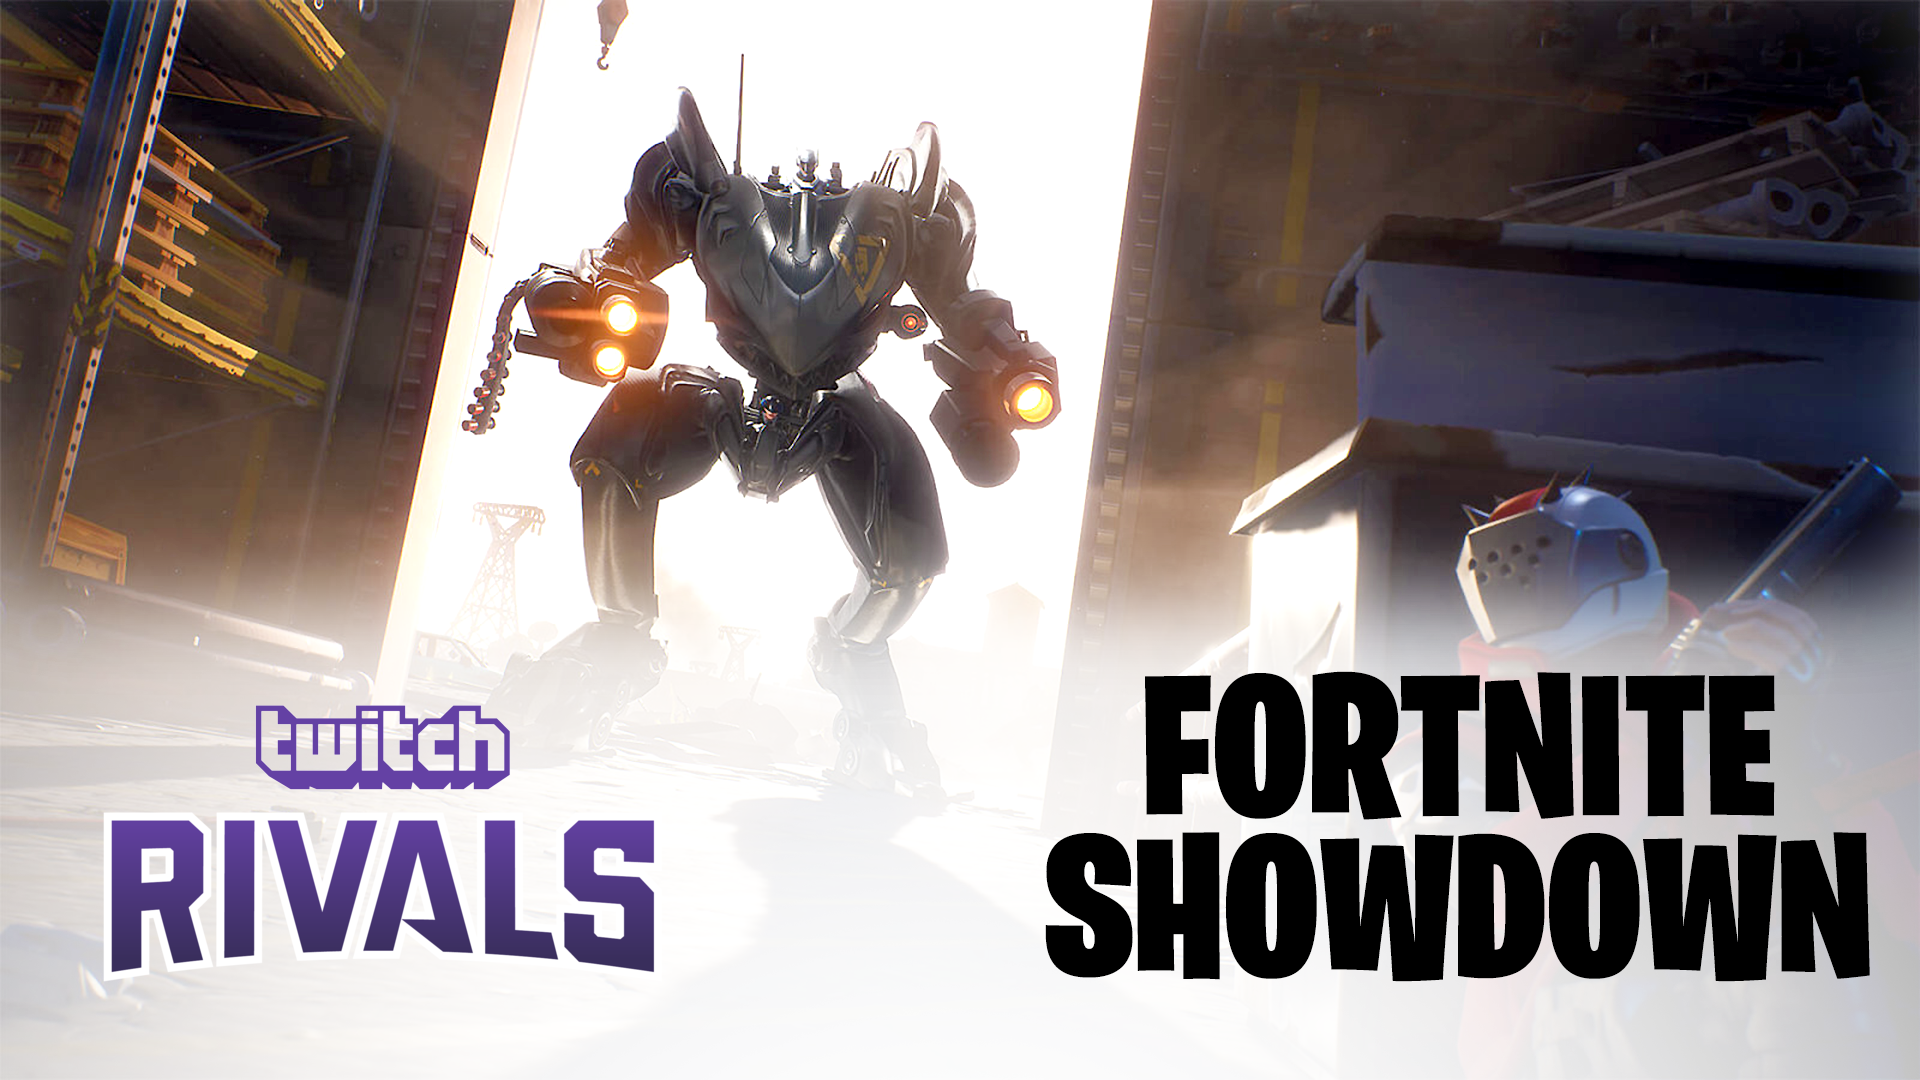 Twitch Rivals Fortnite Showdown: Live stream, players, time and more for $400K event